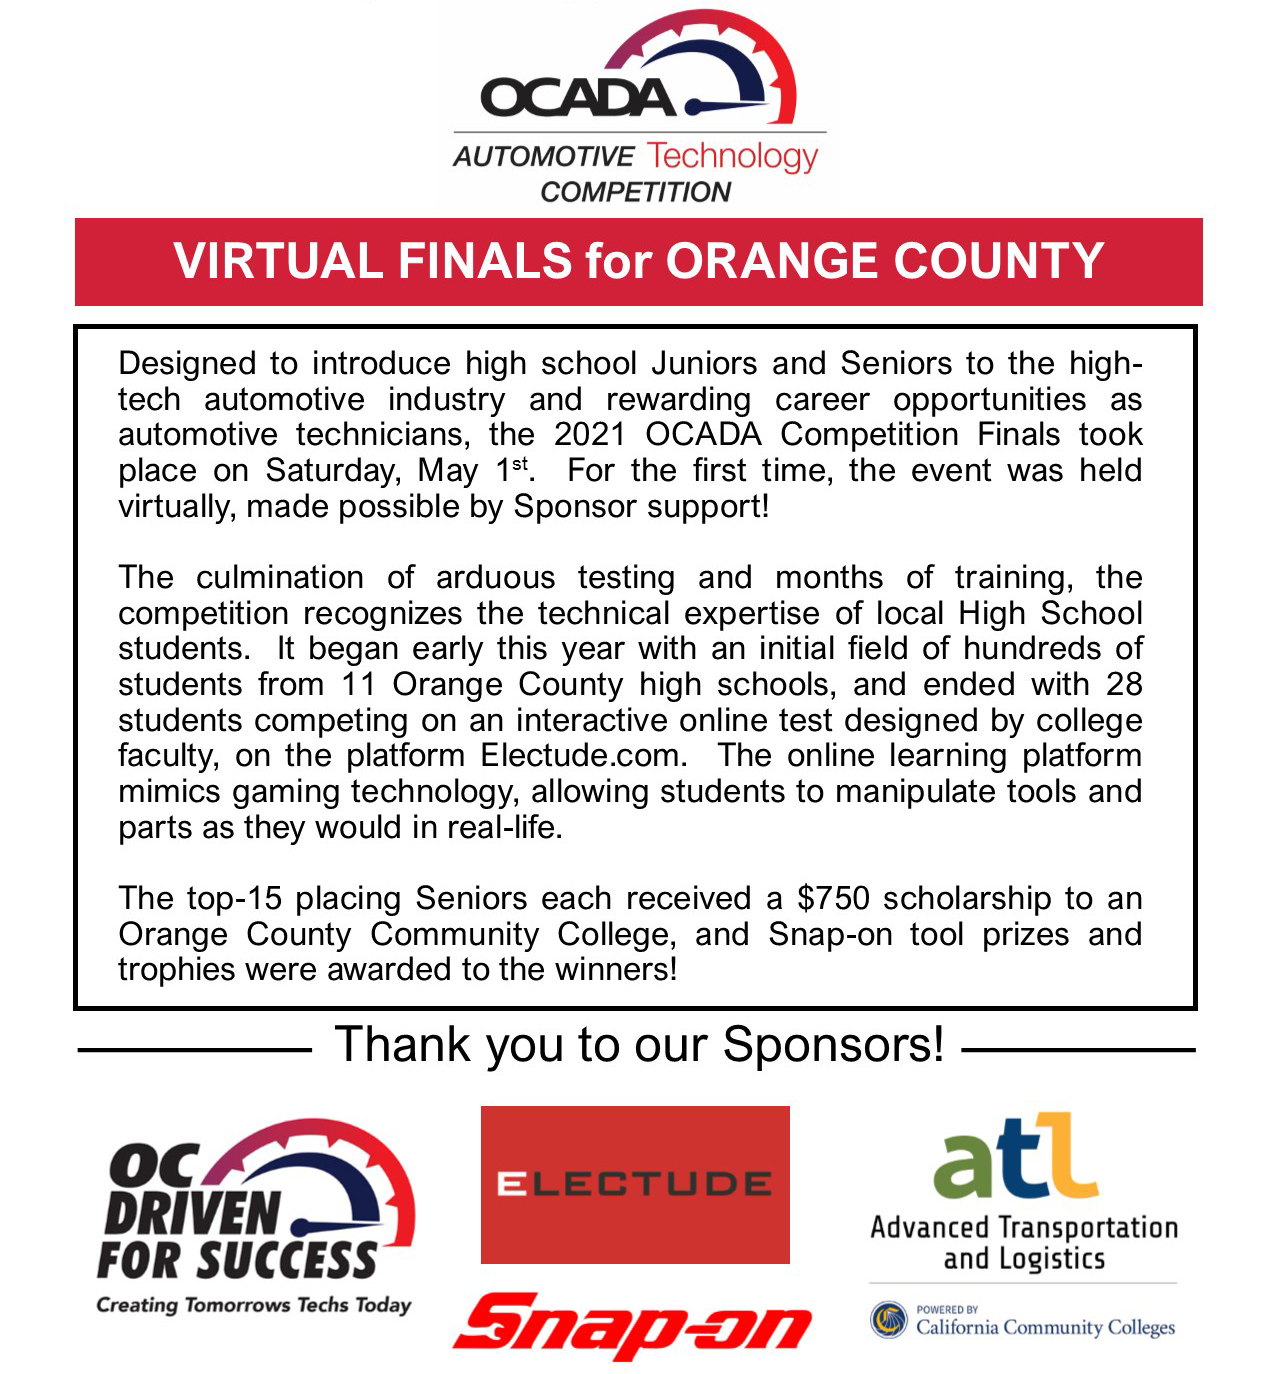 OCADA 28th Annual Automotive Technology Competition